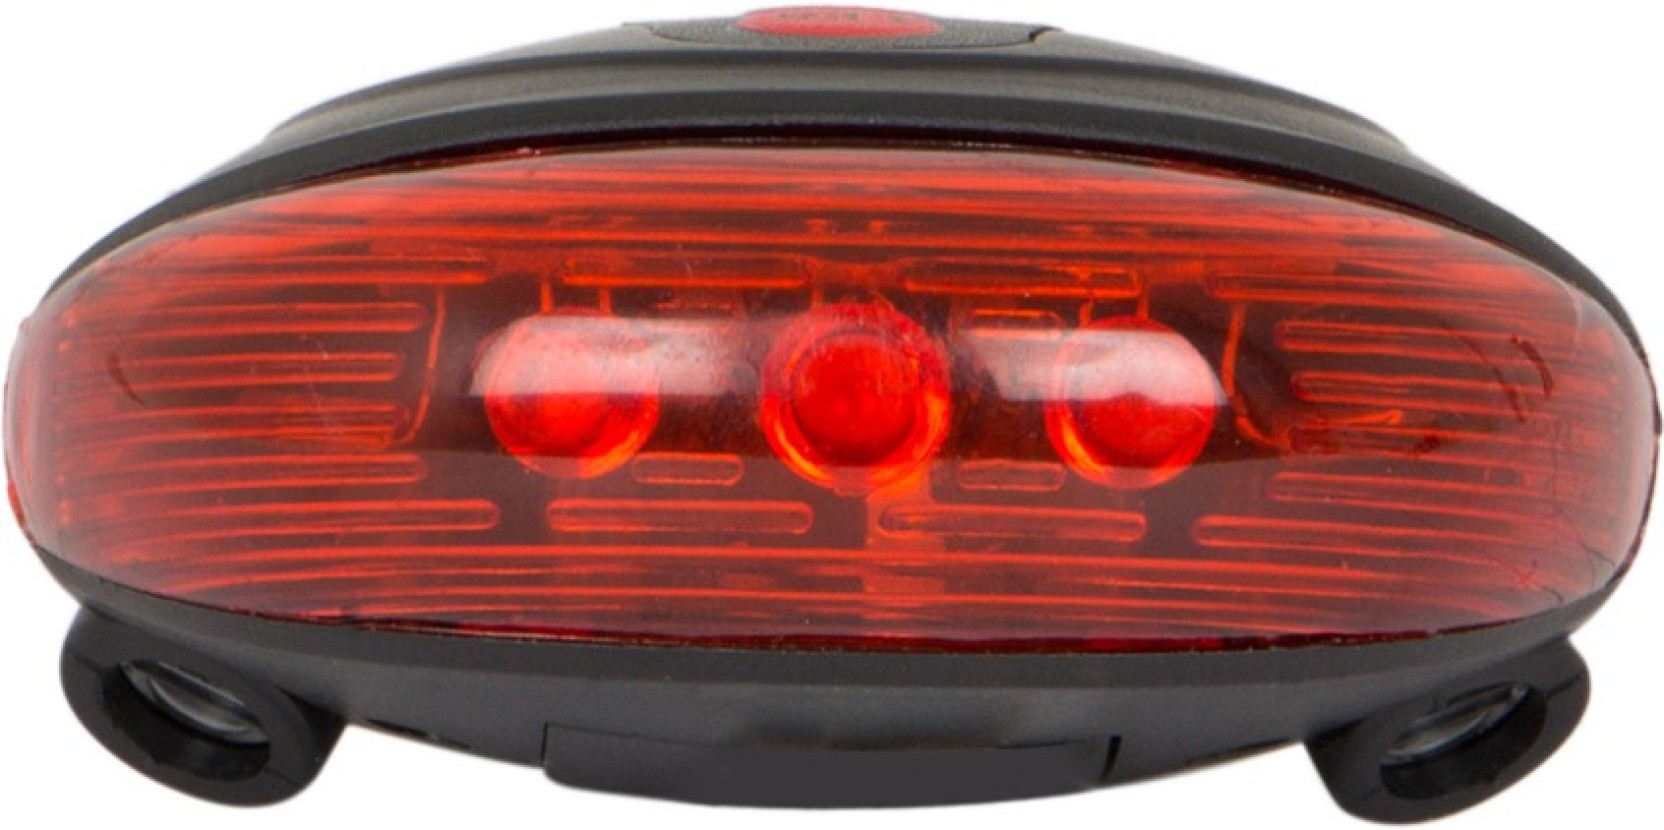 Veebo Bicycle Rear Tail Light Laser With 5 Led Flashing Break Home